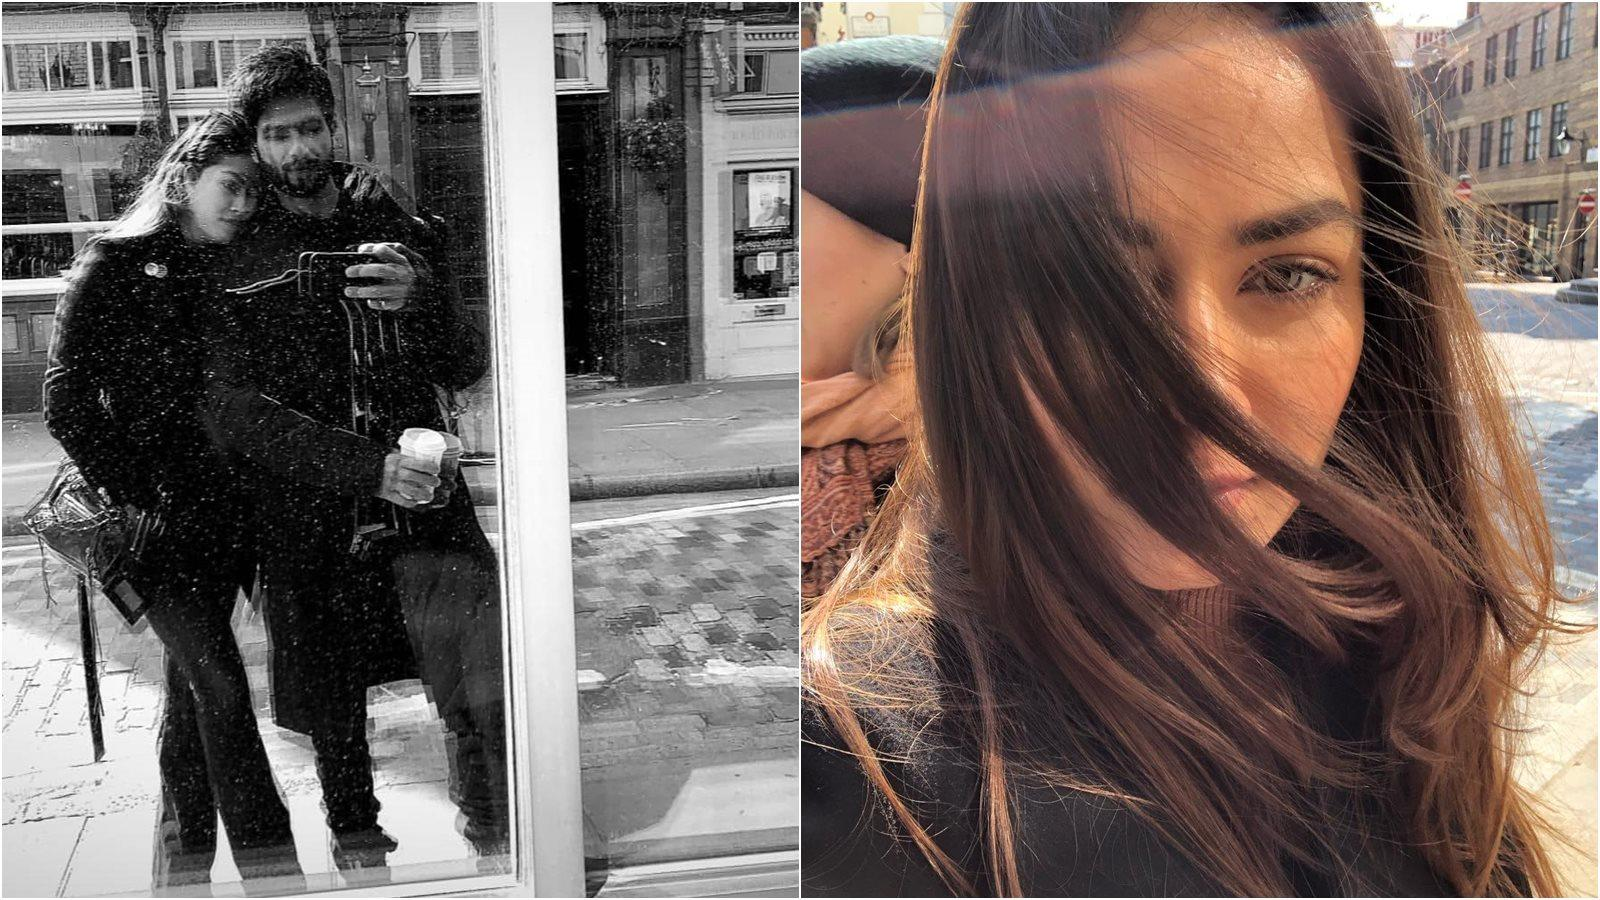 shahid-kapoor-and-mira-rajput-holiday-in-london-without-their-little-ones